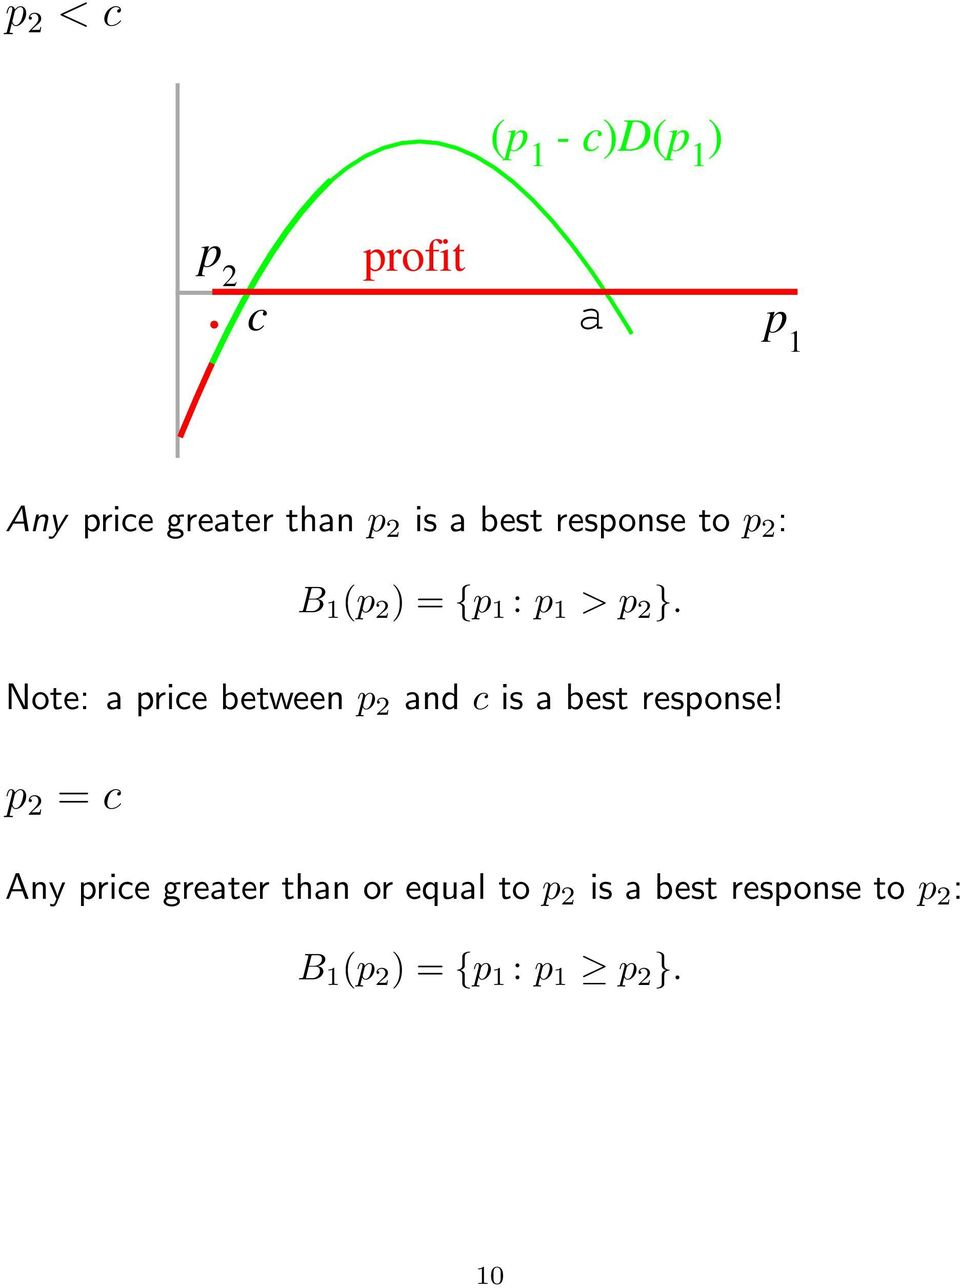 Note: a price between p 2 and c is a best response!